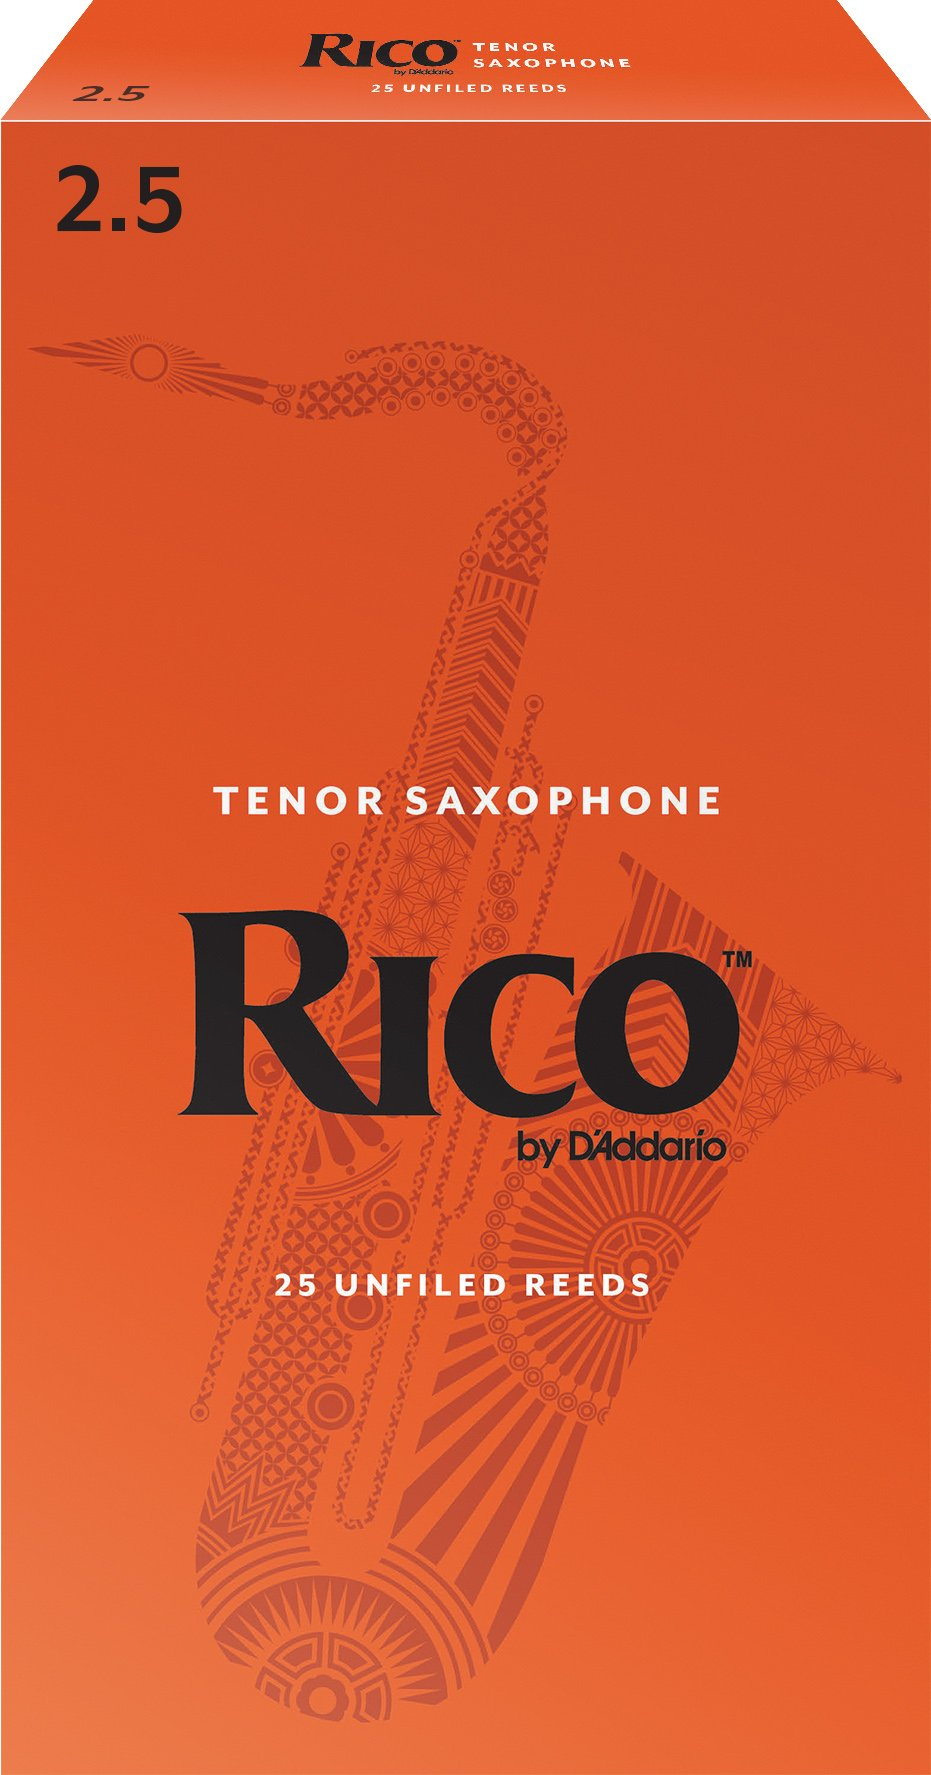 Rico by D'Addario Tenor Sax Reeds, Strength 2.5, 25-pack